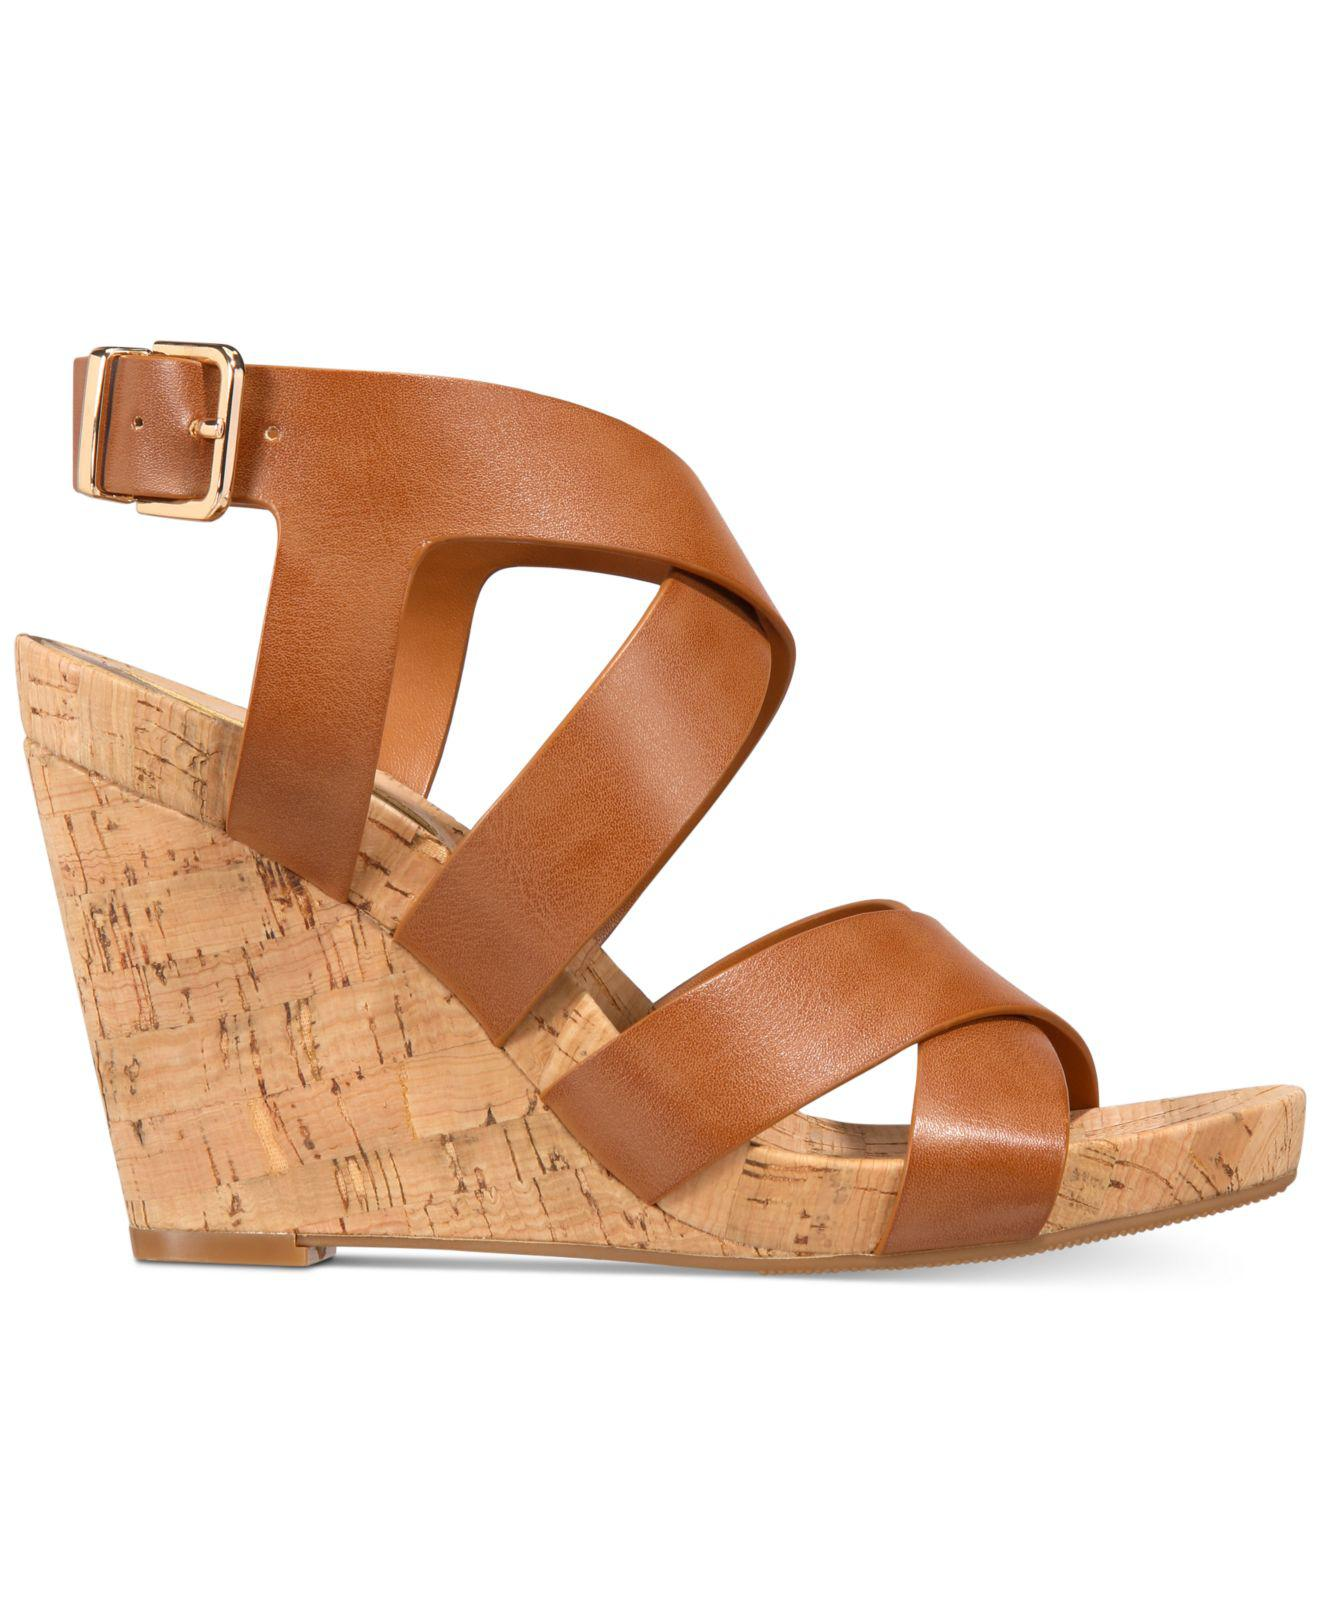 70ab1579605e Lyst - INC International Concepts Women s Landor Strappy Wedge Sandals in  Brown